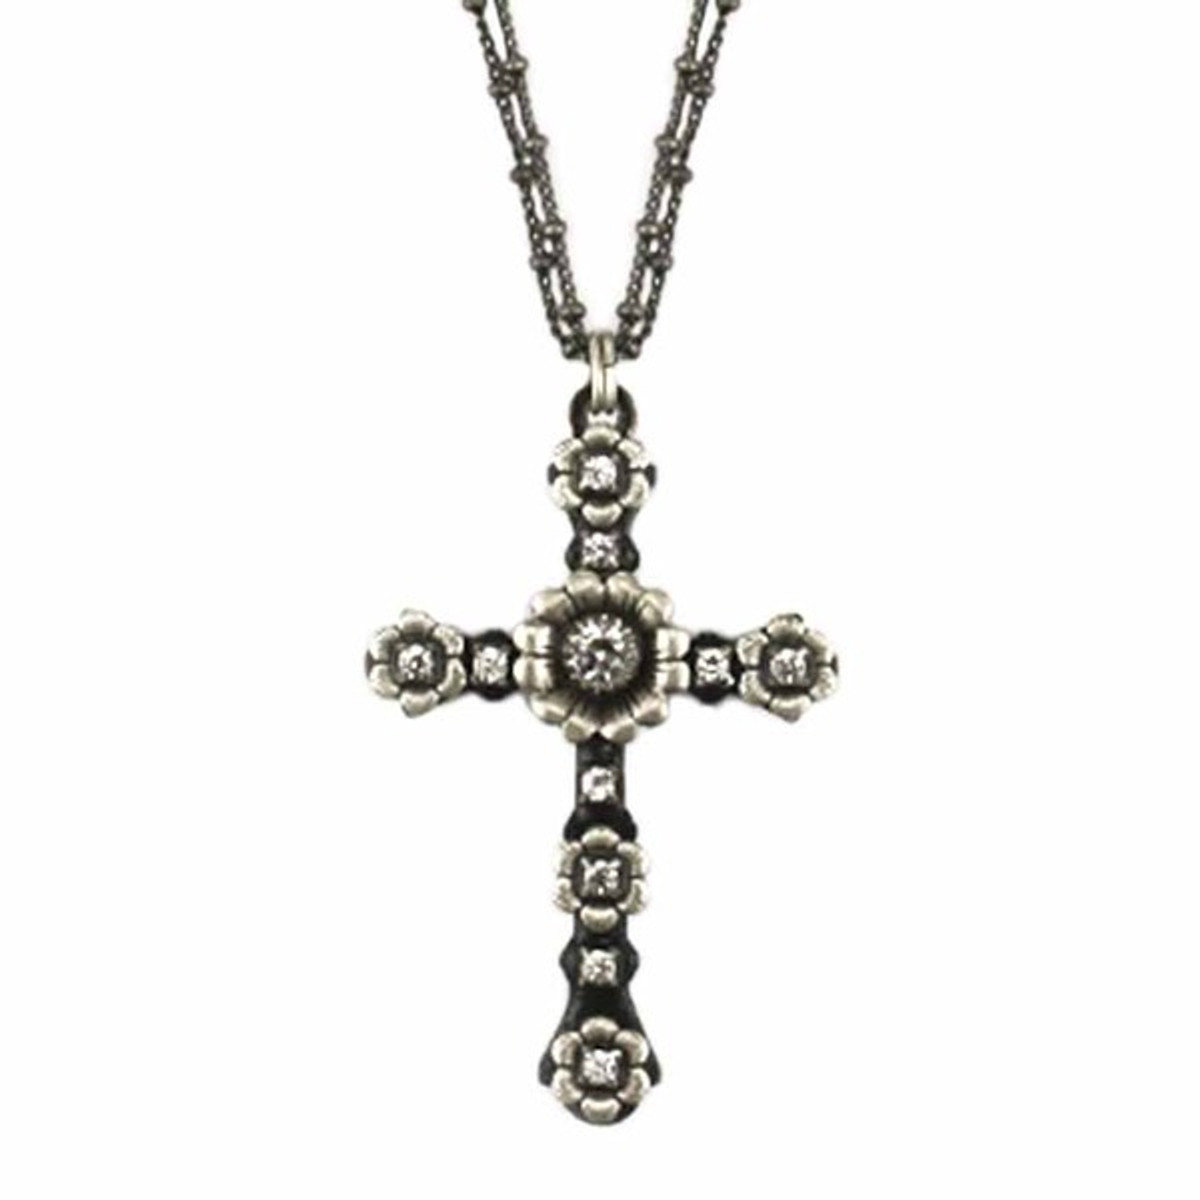 Black Floral Cross Necklace